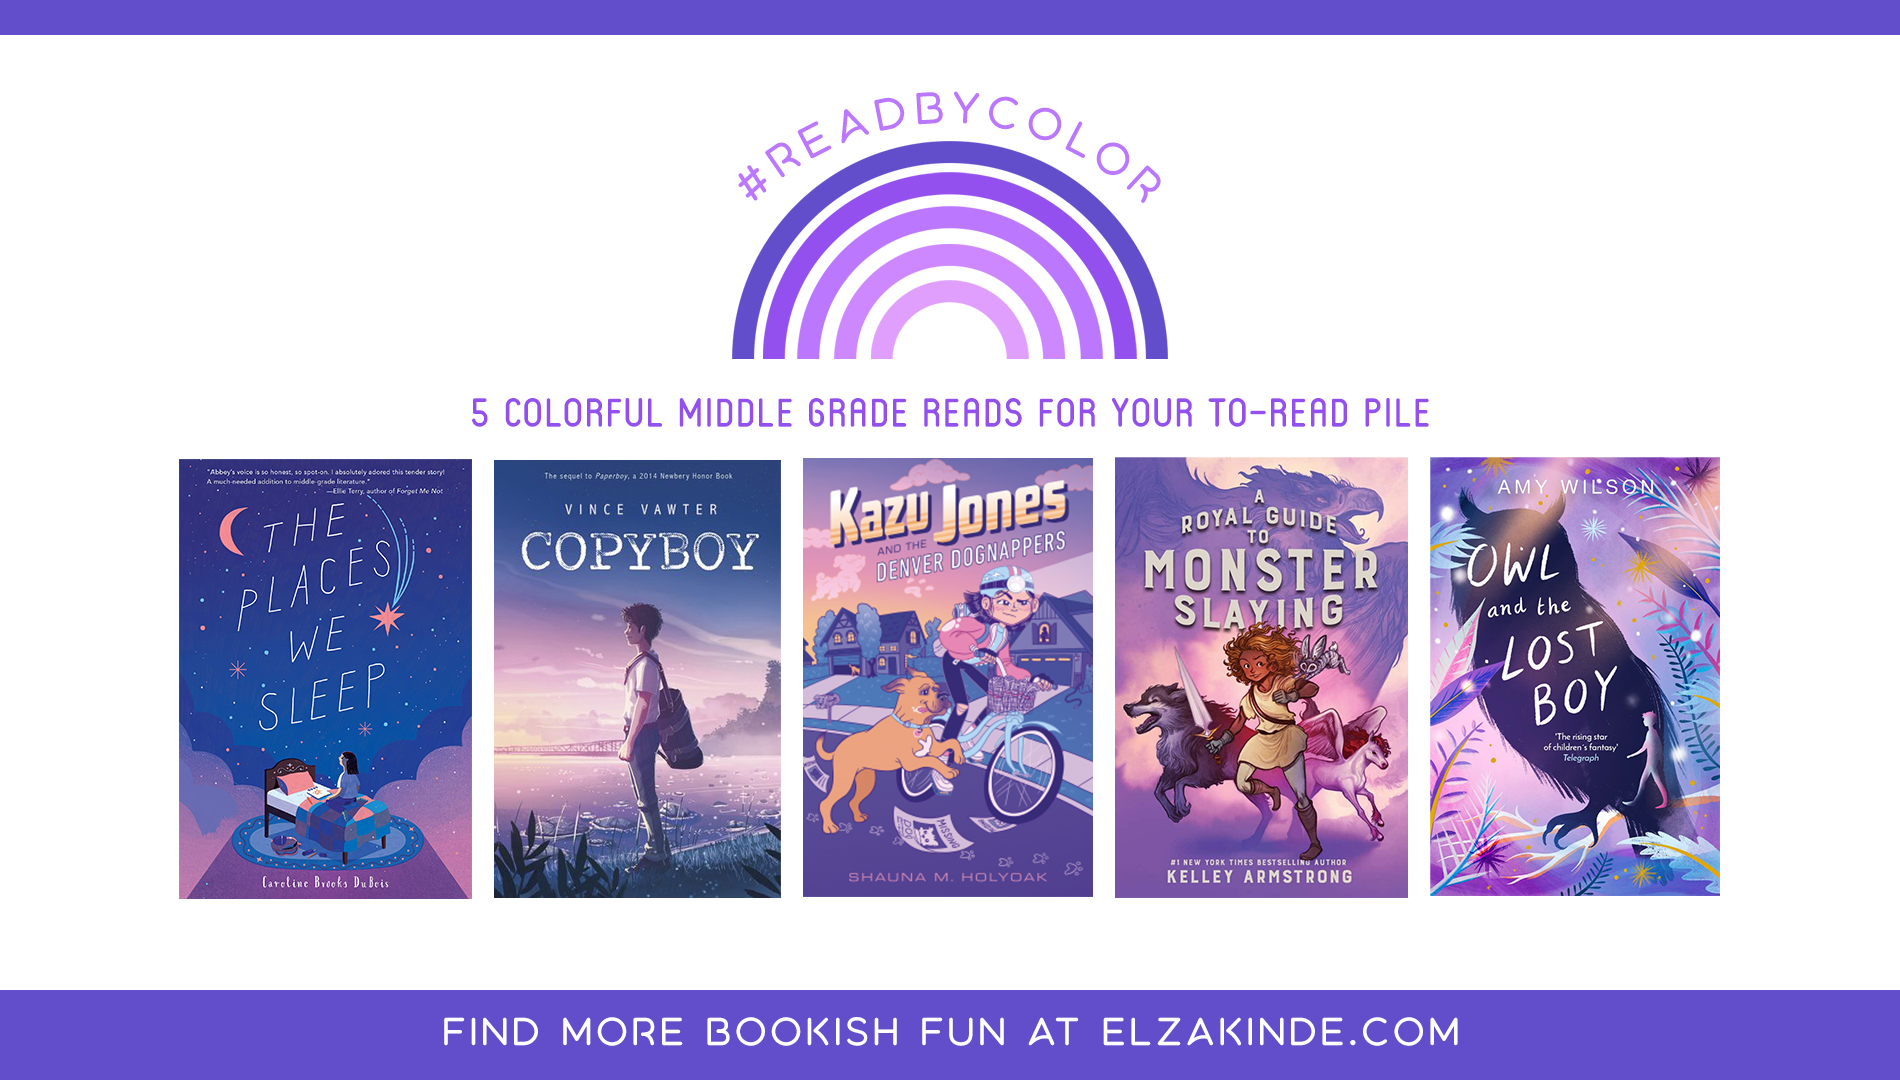 #ReadByColor: 5 Colorful Middle Grade Reads for Your To-Read Pile | features the book covers of THE PLACES WE SLEEP by Caroline Brooks DuBois; COPYBOY by Vince Vawter; KAZU JONES AND THE DENVER DOGNAPPERS by Shauna M. Holyoak; A ROYAL GUIDE TO MONSTER SLAYING by Kelley Armstrong; and OWL AND THE LOST BOY by Amy Wilson